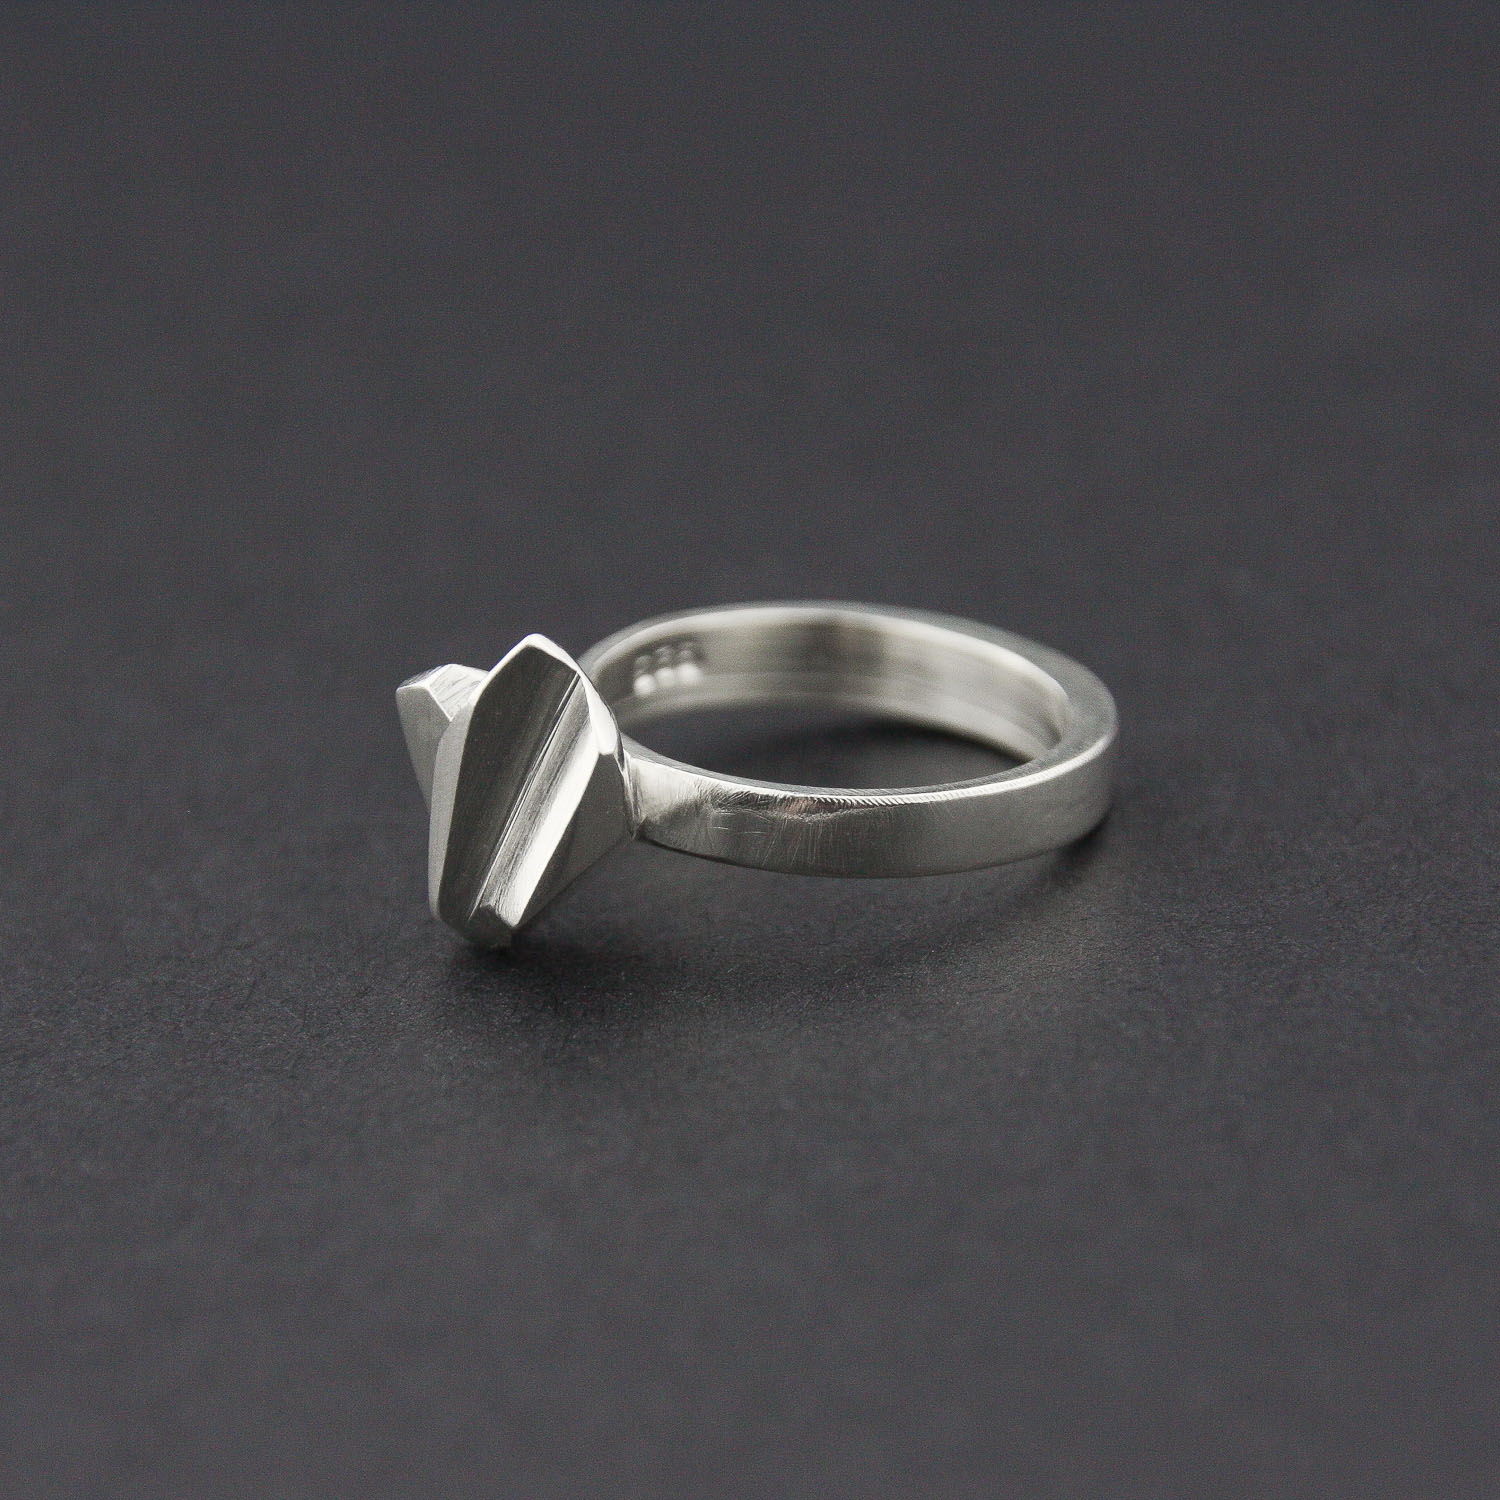 Leonie Simpson Jewellery Fracture Facet Solitaire ring sterling silver